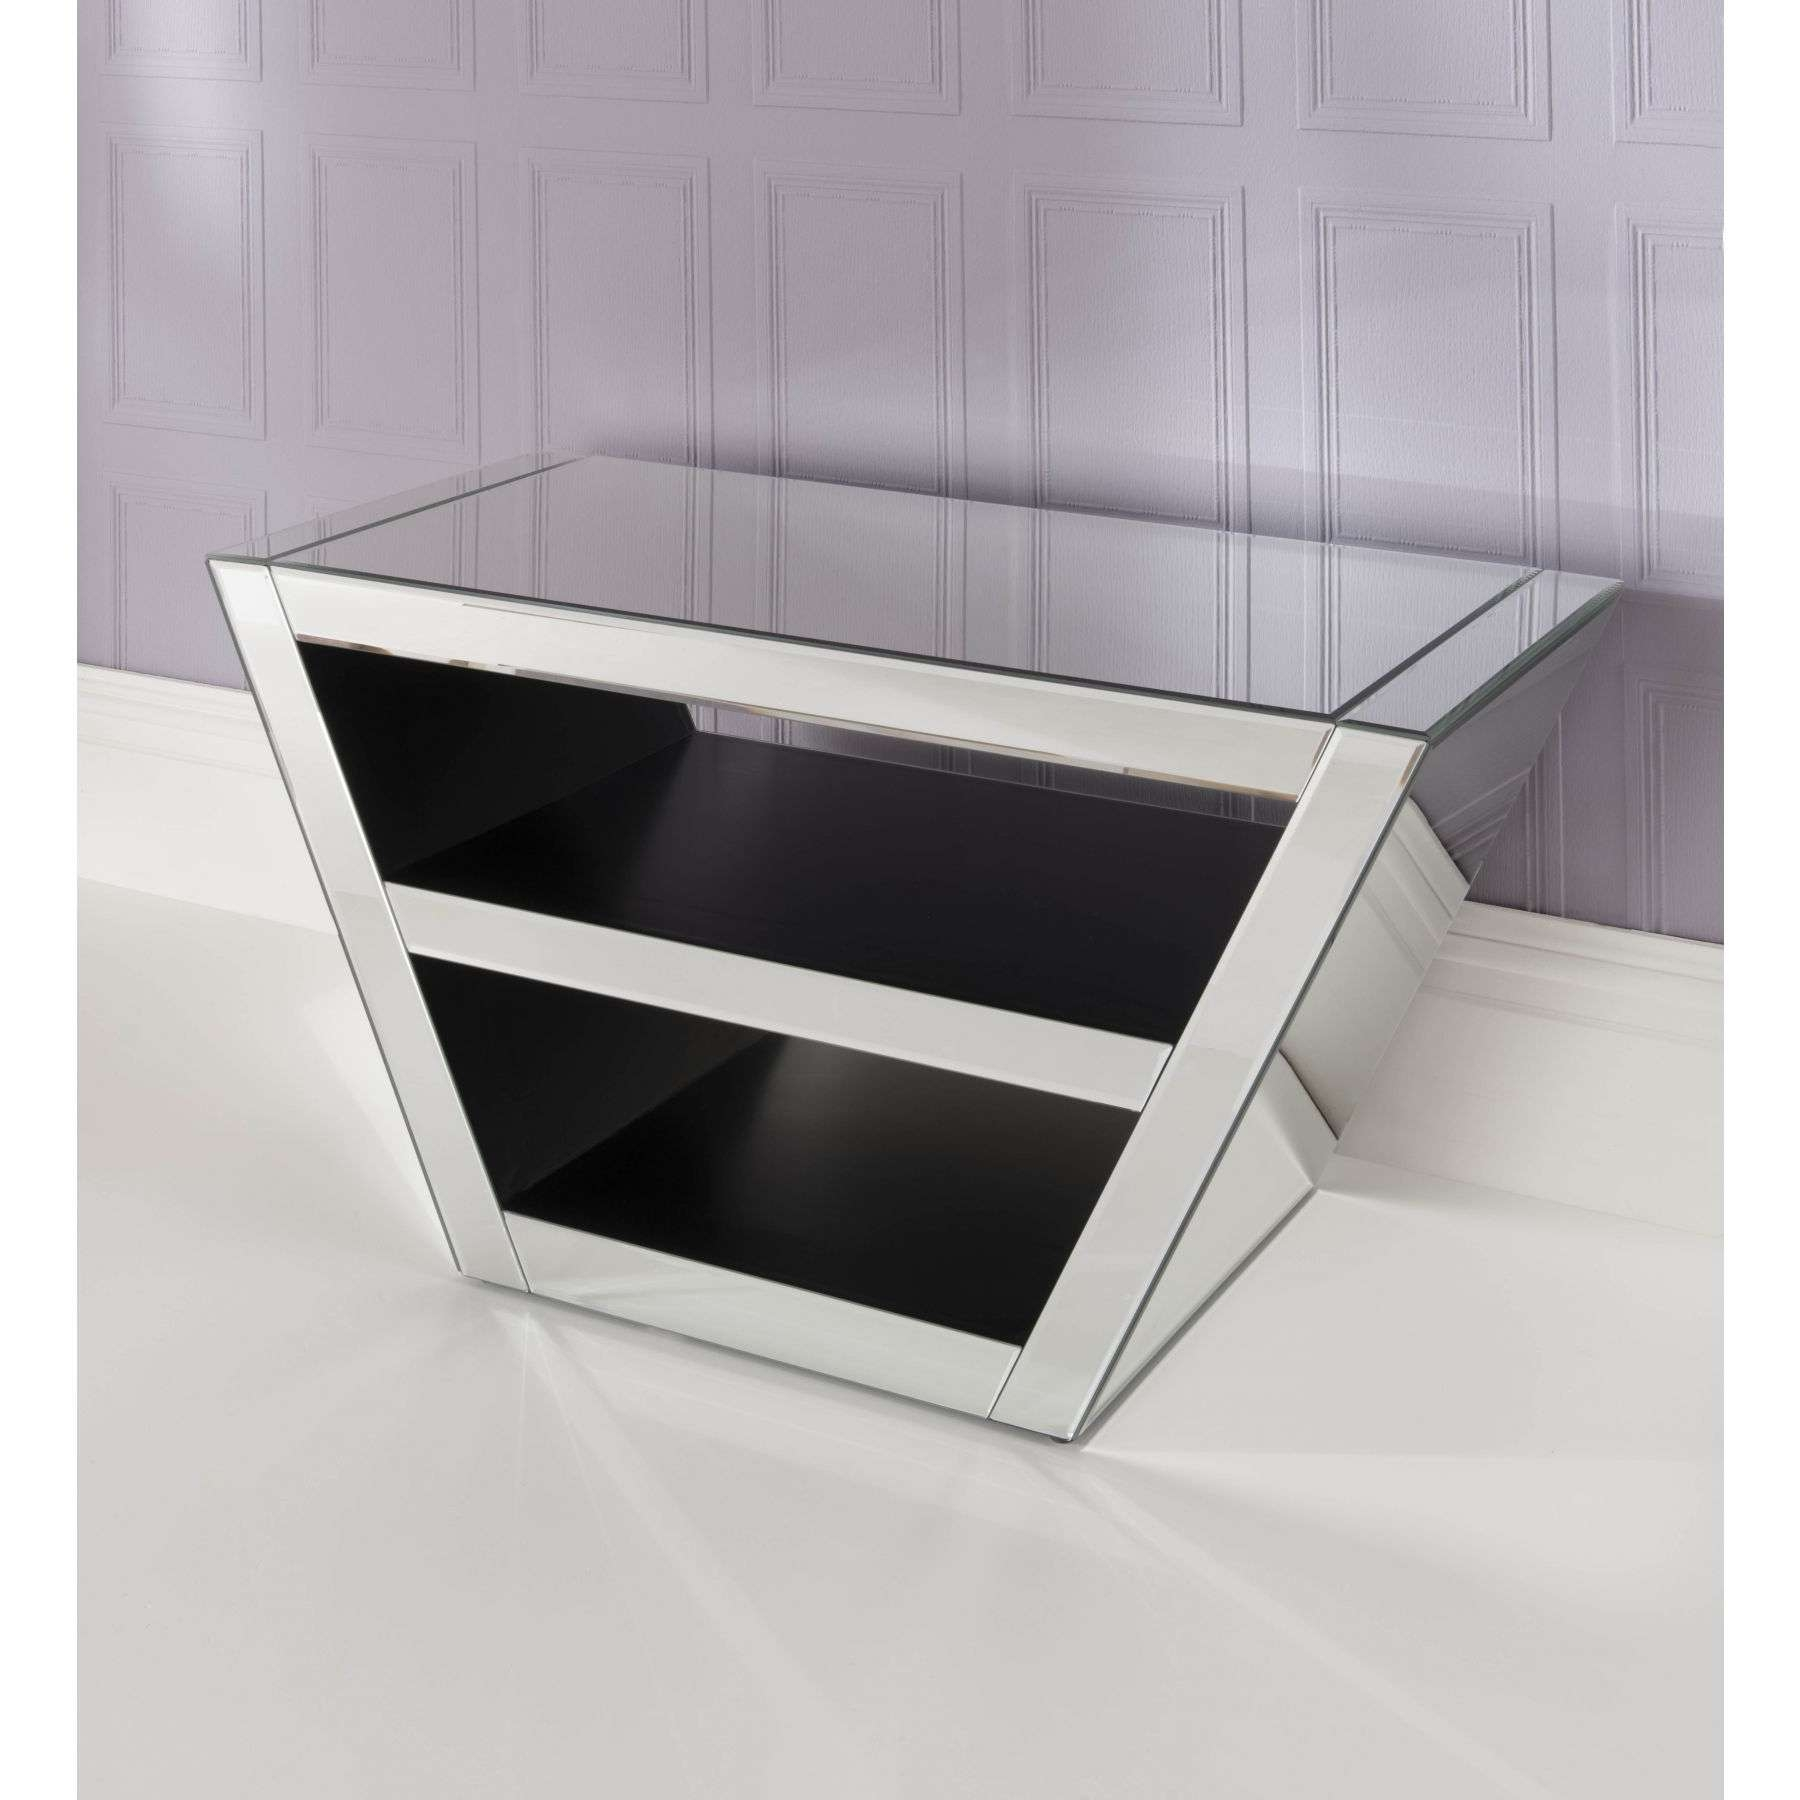 Mirrored Tv Cabinet | Venetian Glass Tv Stand | Homesdirect365 Regarding Mirrored Tv Cabinets Furniture (View 9 of 20)